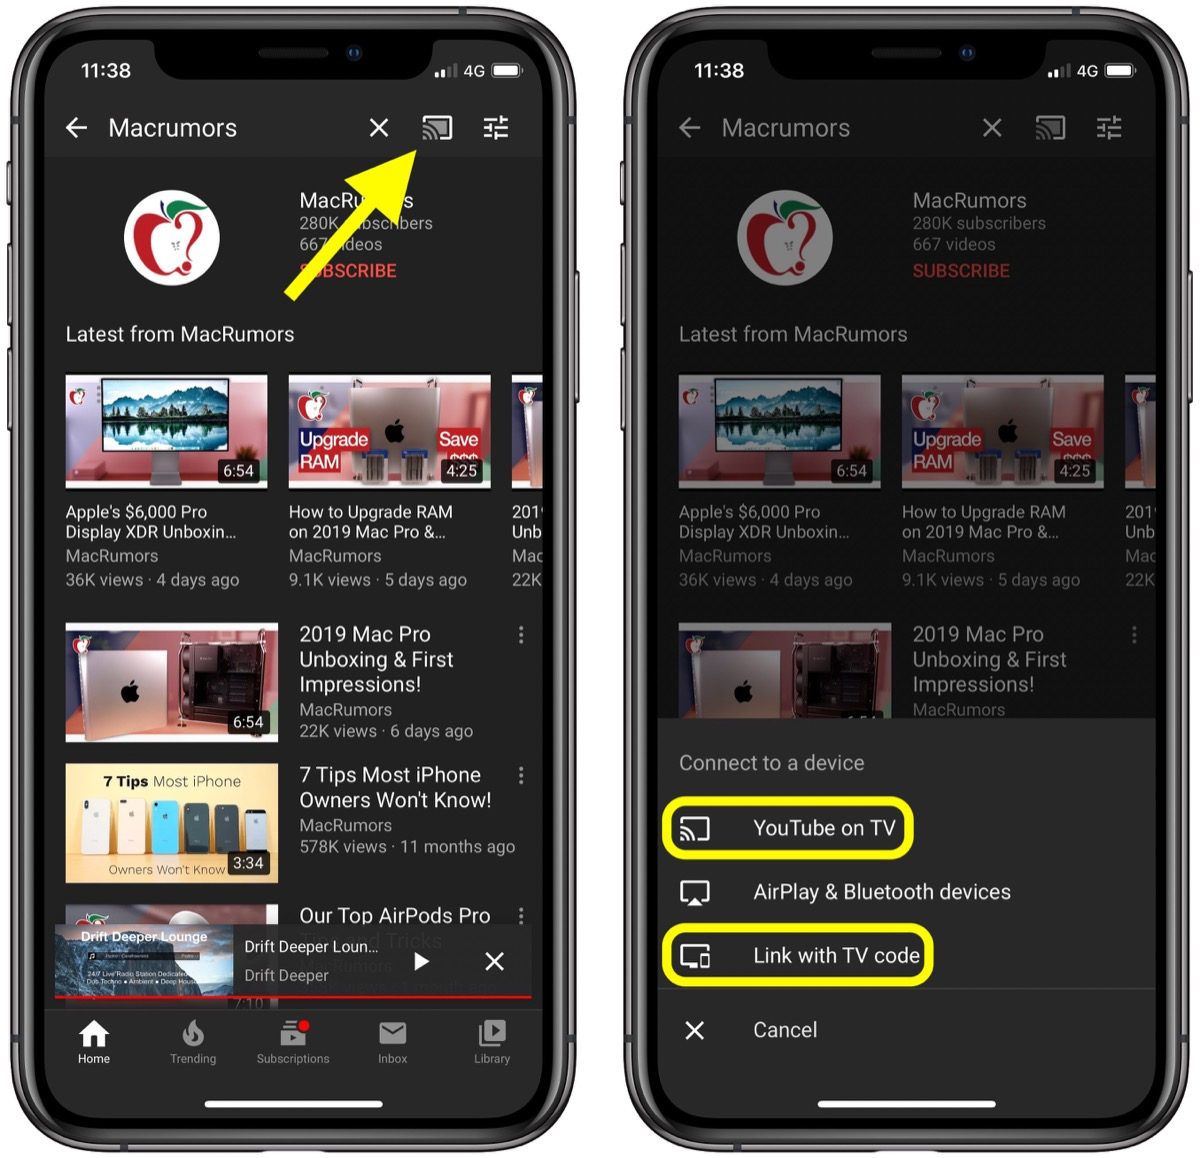 YouTube's Mobile App Now Allows Voice Controls and More 2019 Updates